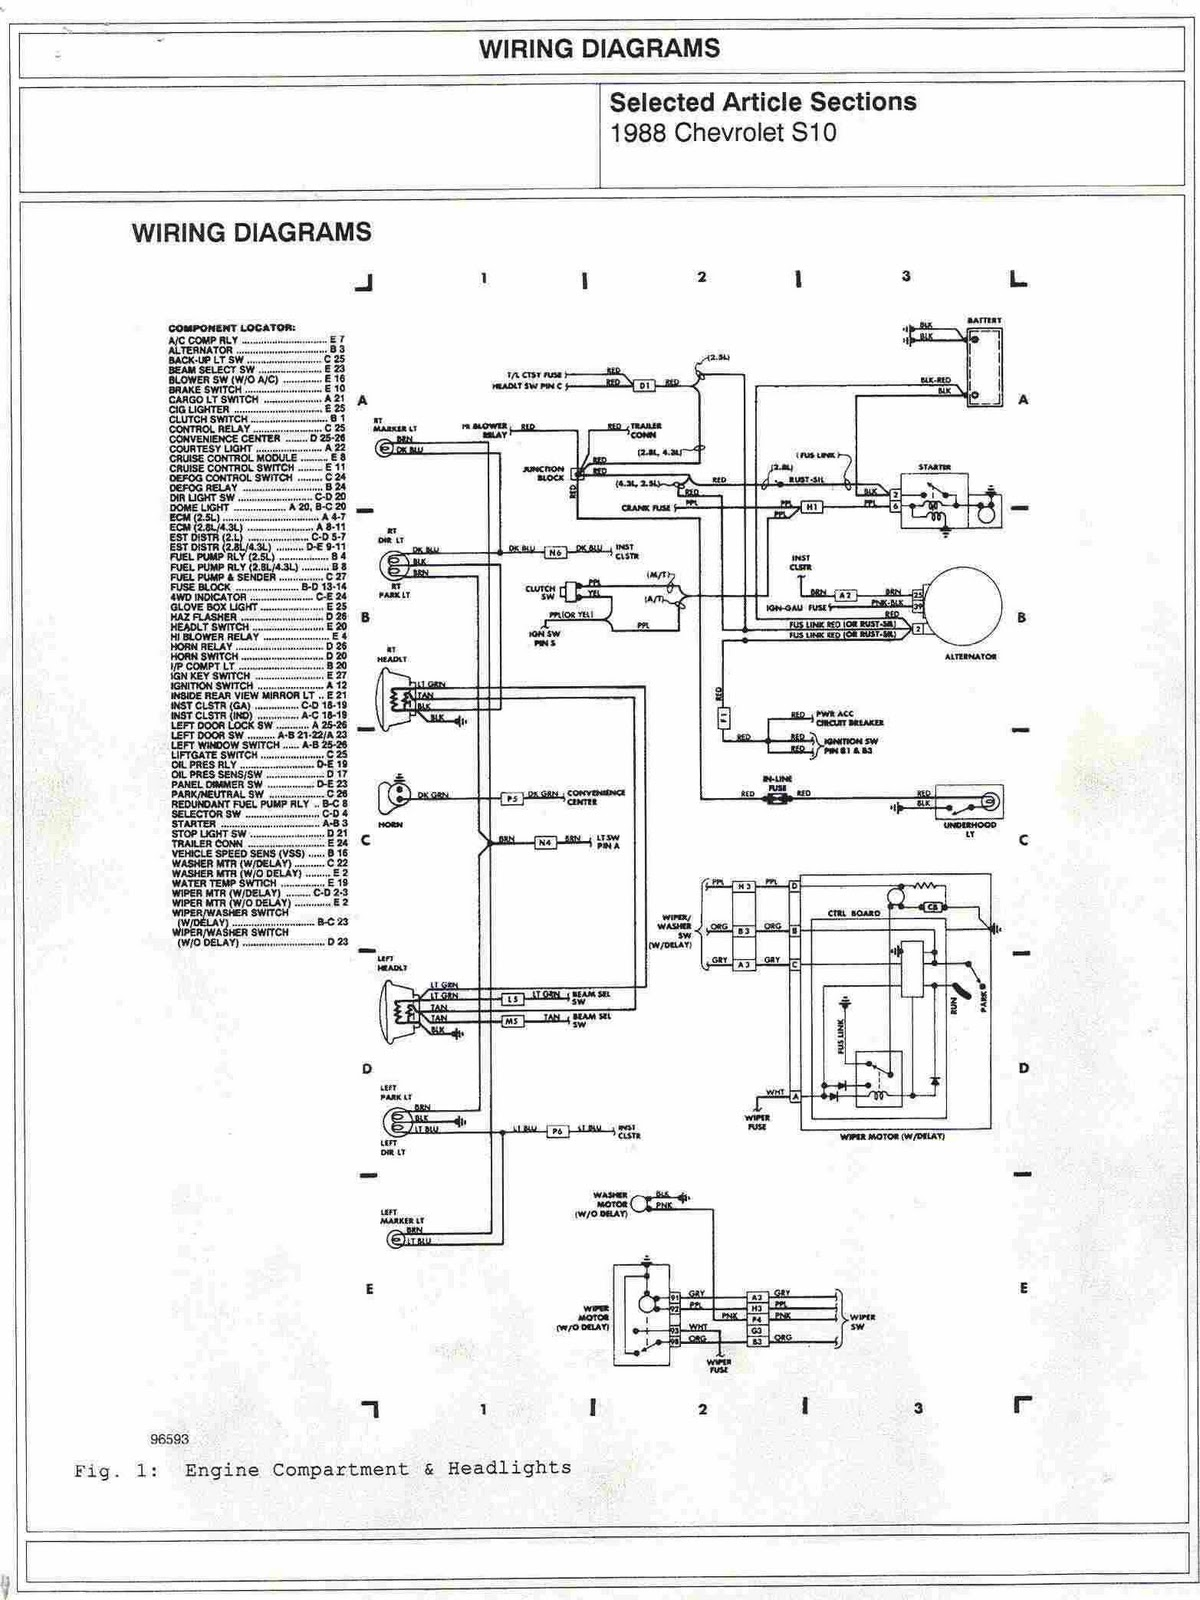 1997 S10 Wiring Schematic Headlight Diagram 97 31 Images Rh Cita Asia Chevy